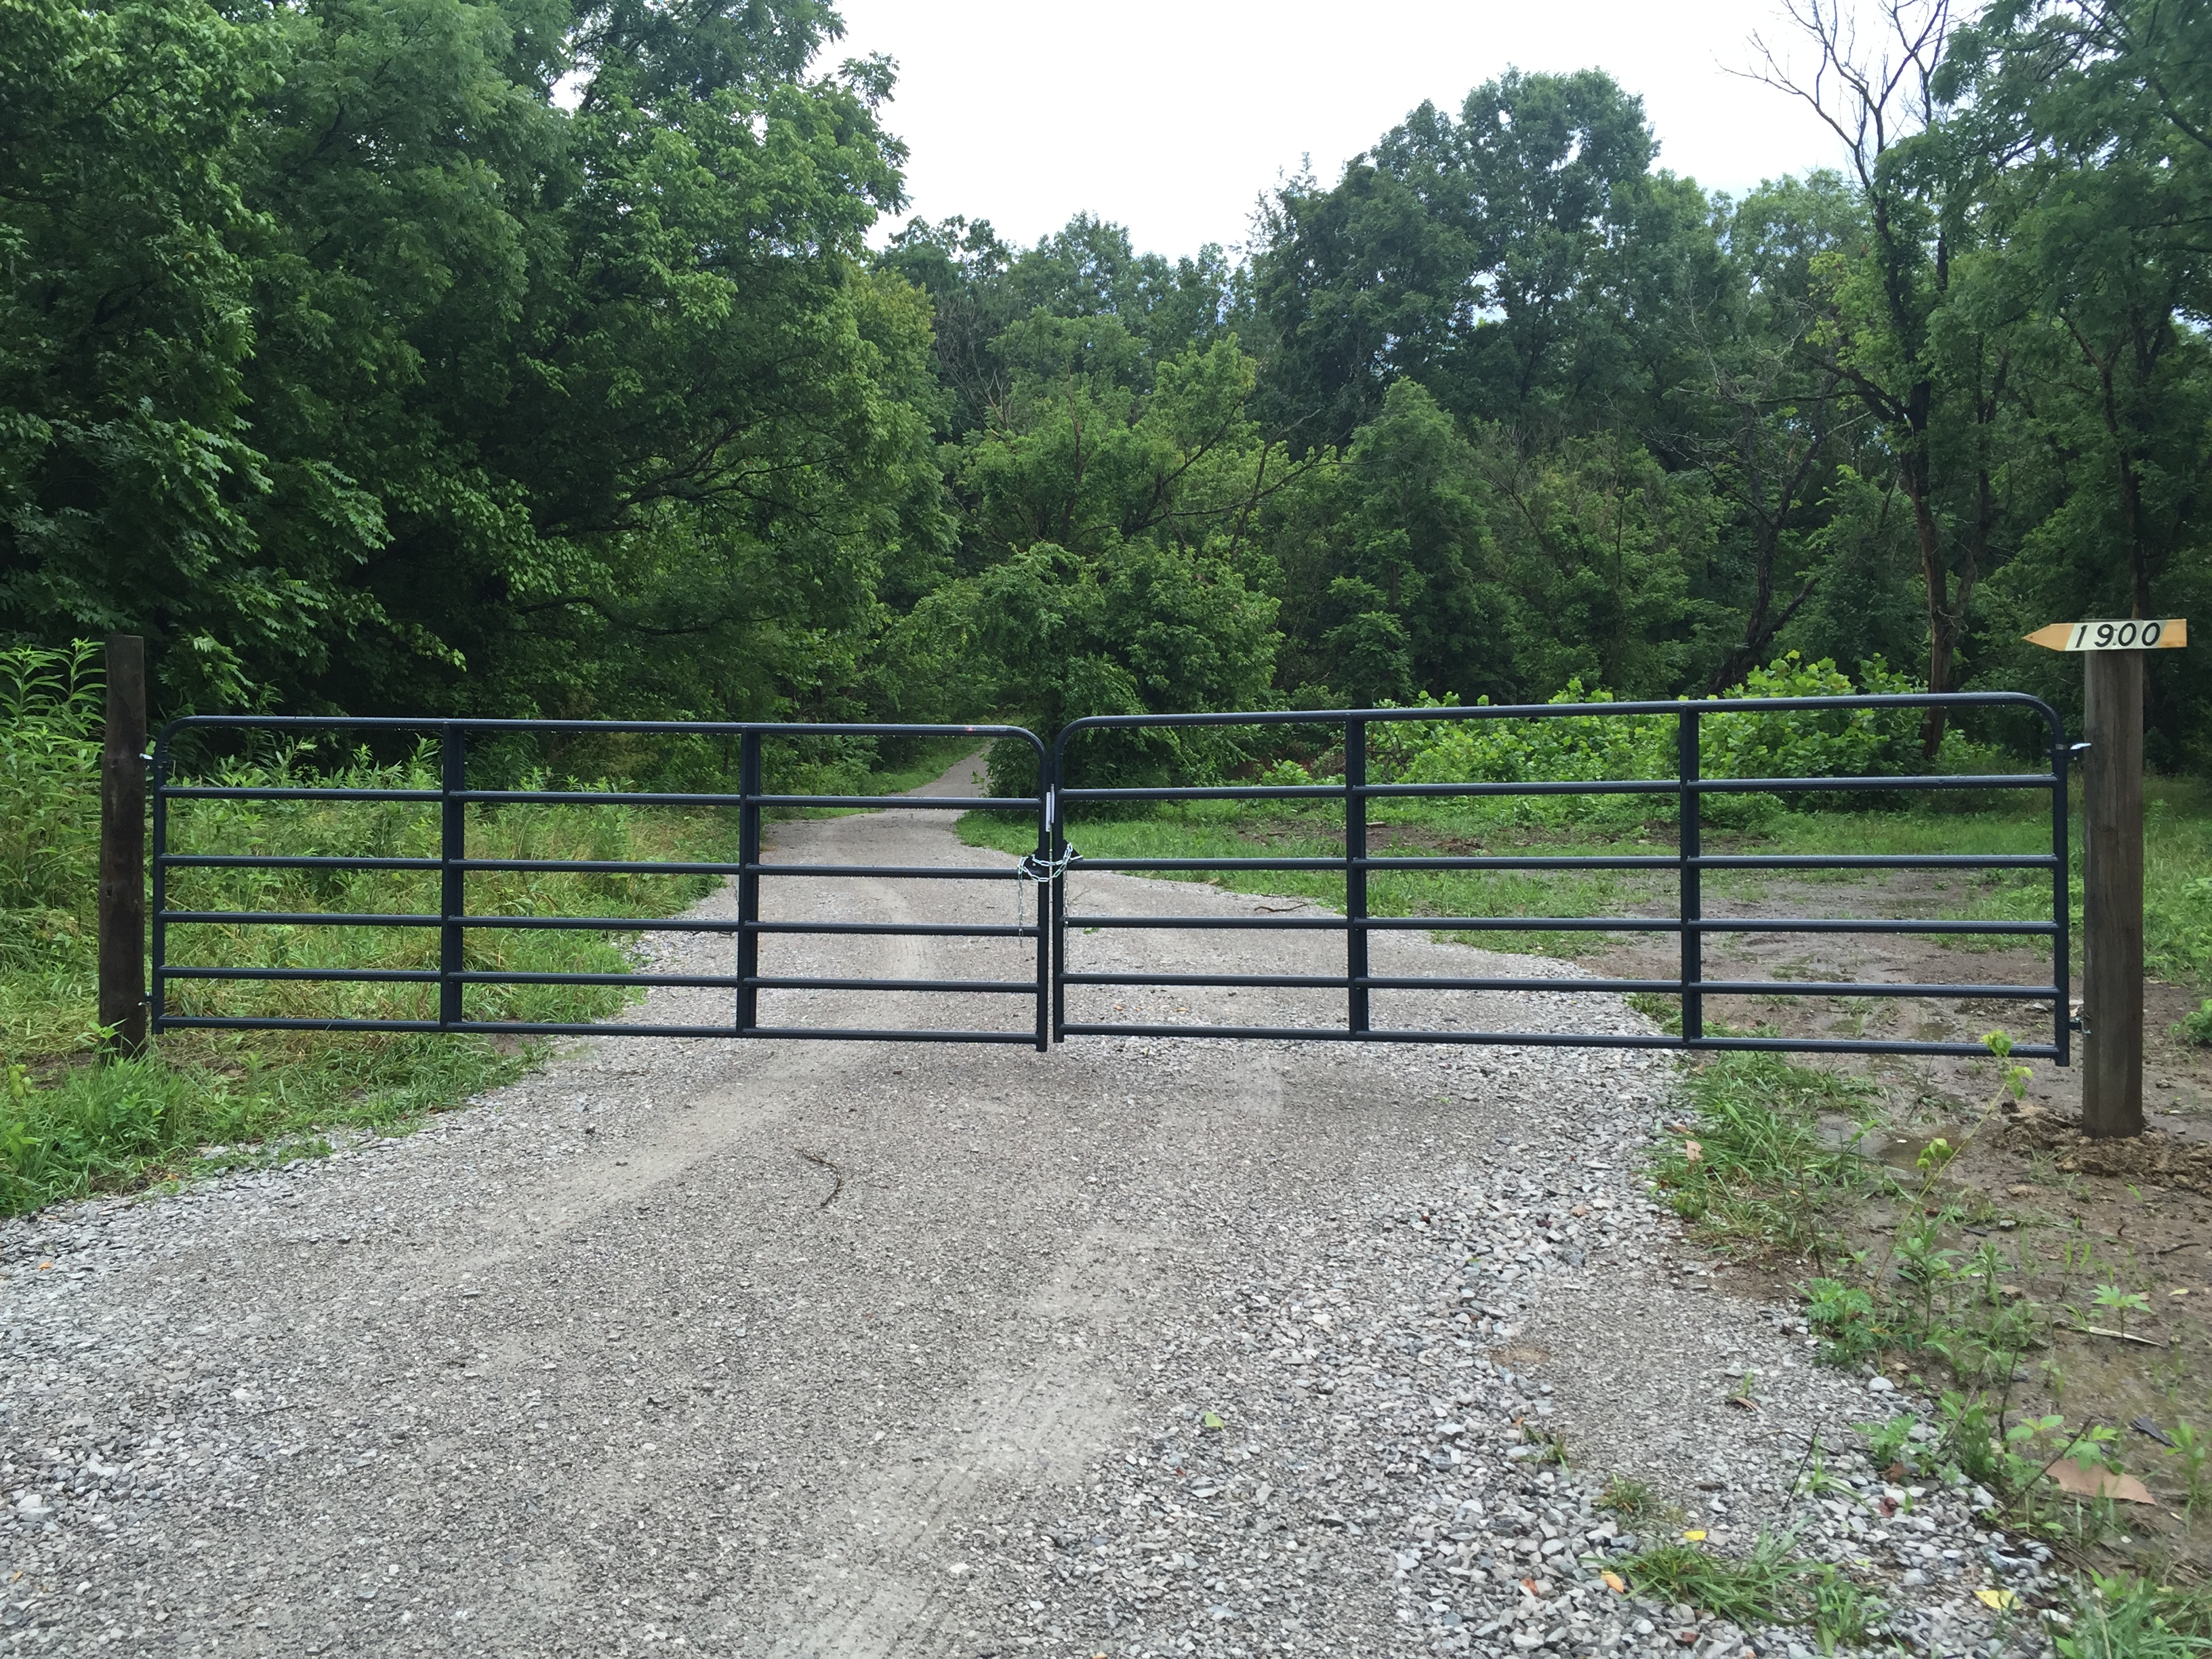 Heekin Clark Creek Road Gate